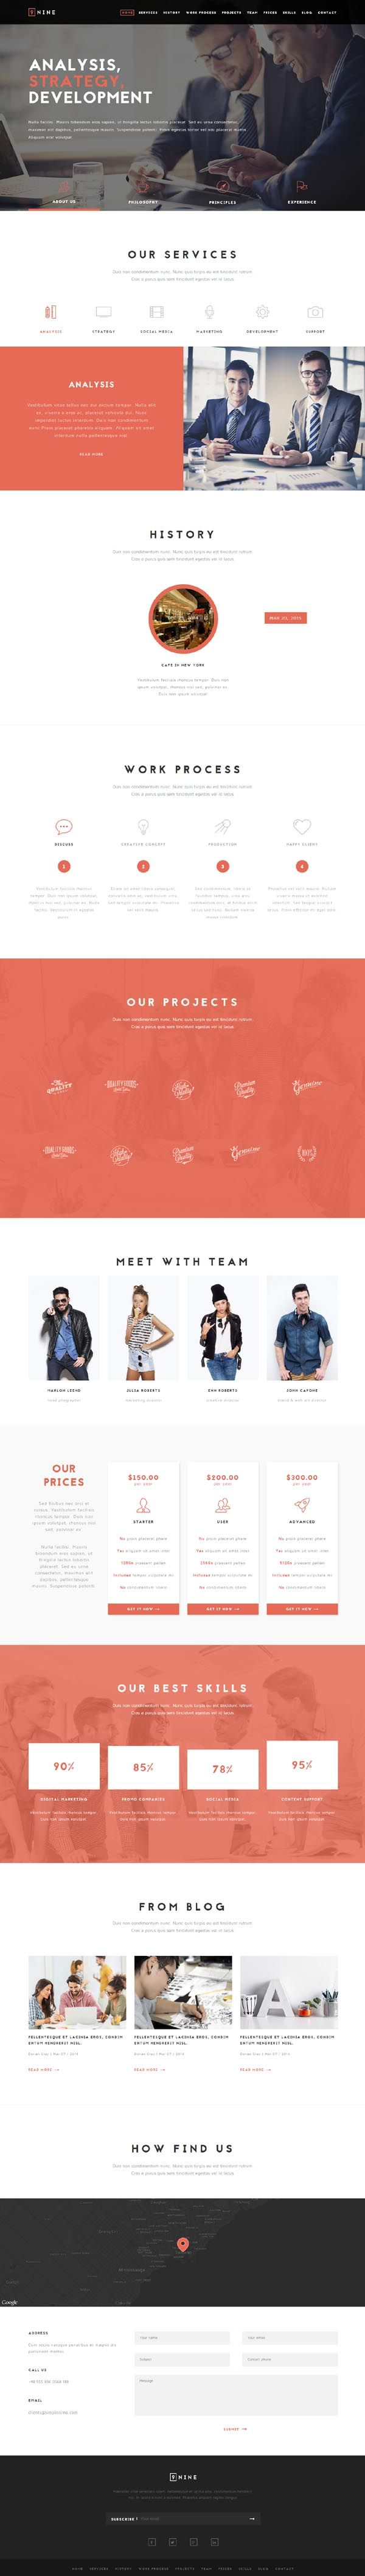 9 best UX/UI Web Design images on Pinterest